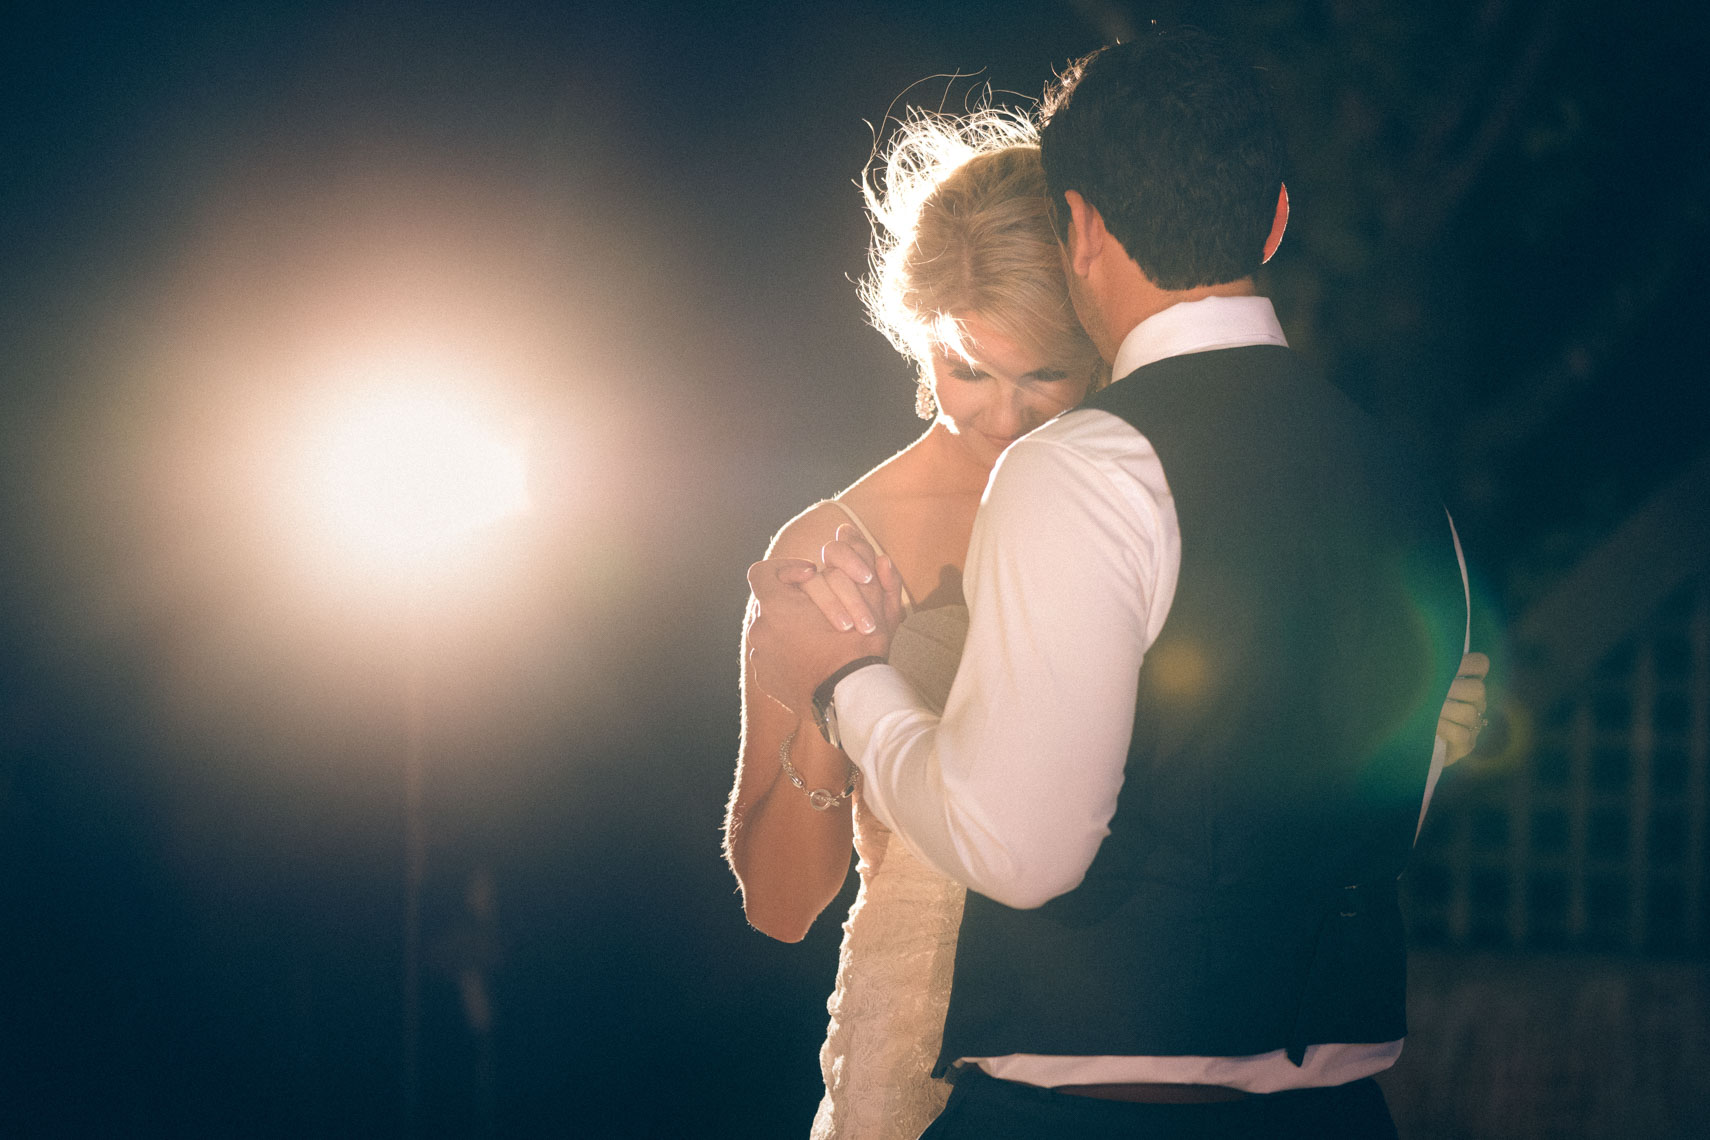 First dance at big sky golf wedding venue near Whistler BC